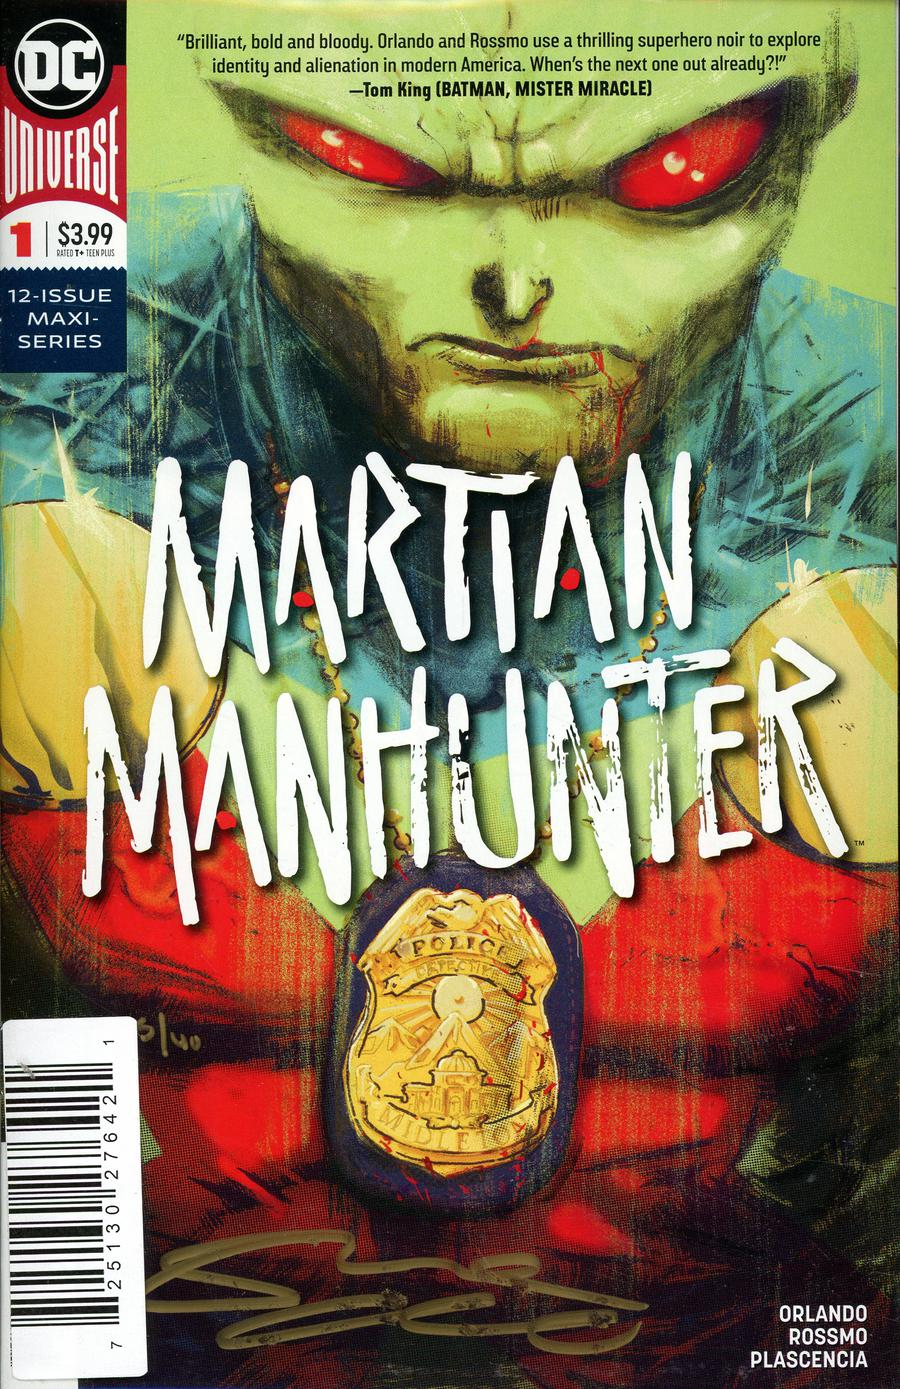 Martian Manhunter Vol 5 #1 Cover D DF Signed By Steve Orlando